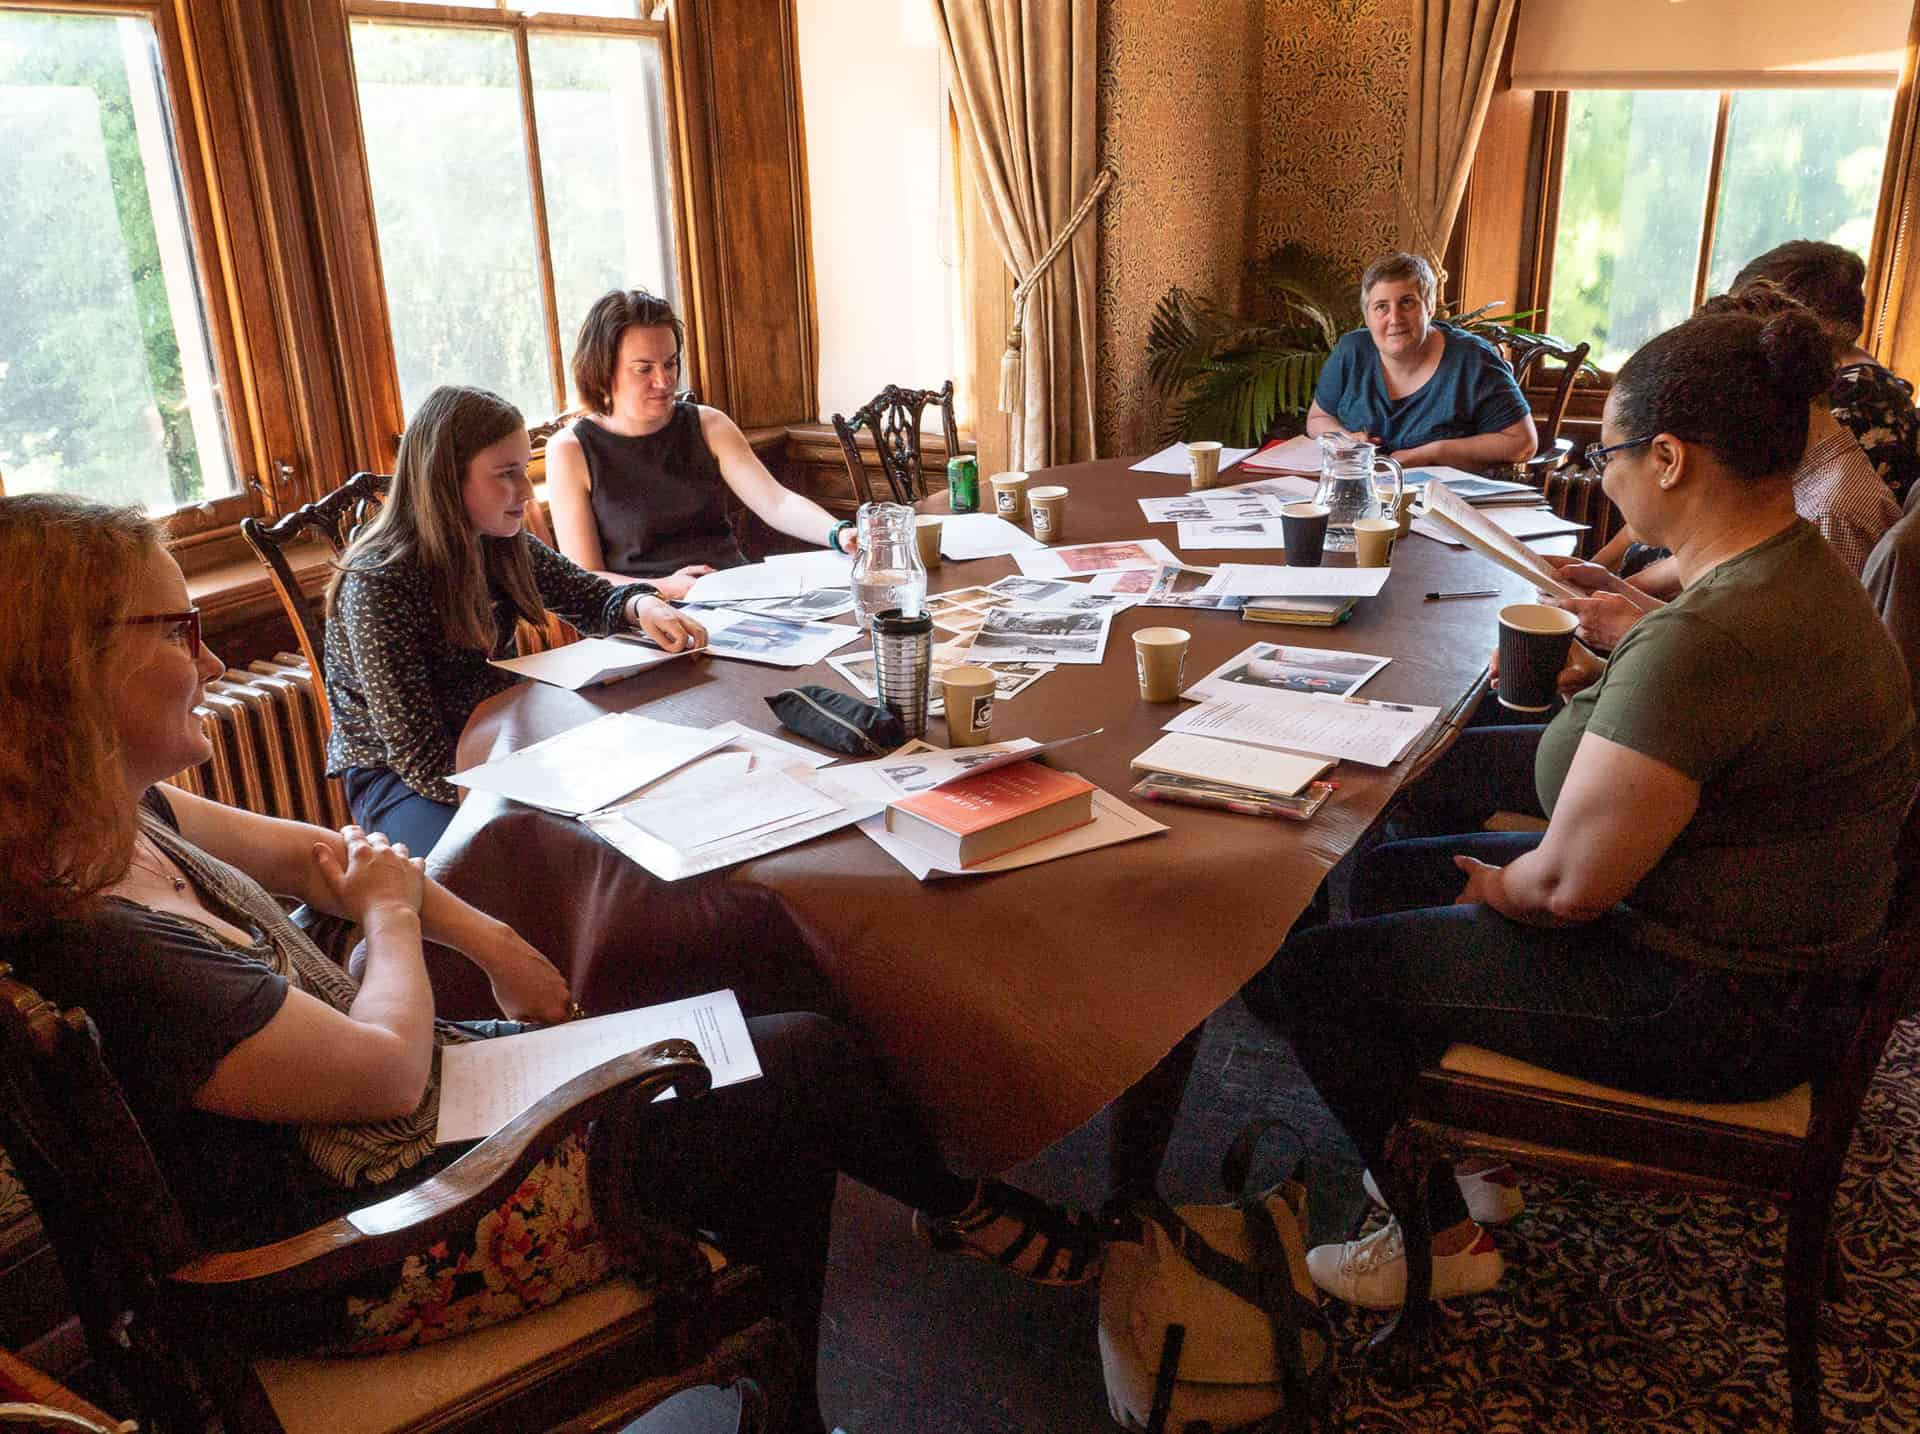 Louise Palfreyman (left) leading the 'In Perspective' Creative Writing Workshop at Haden Hill House Museum in June 2018